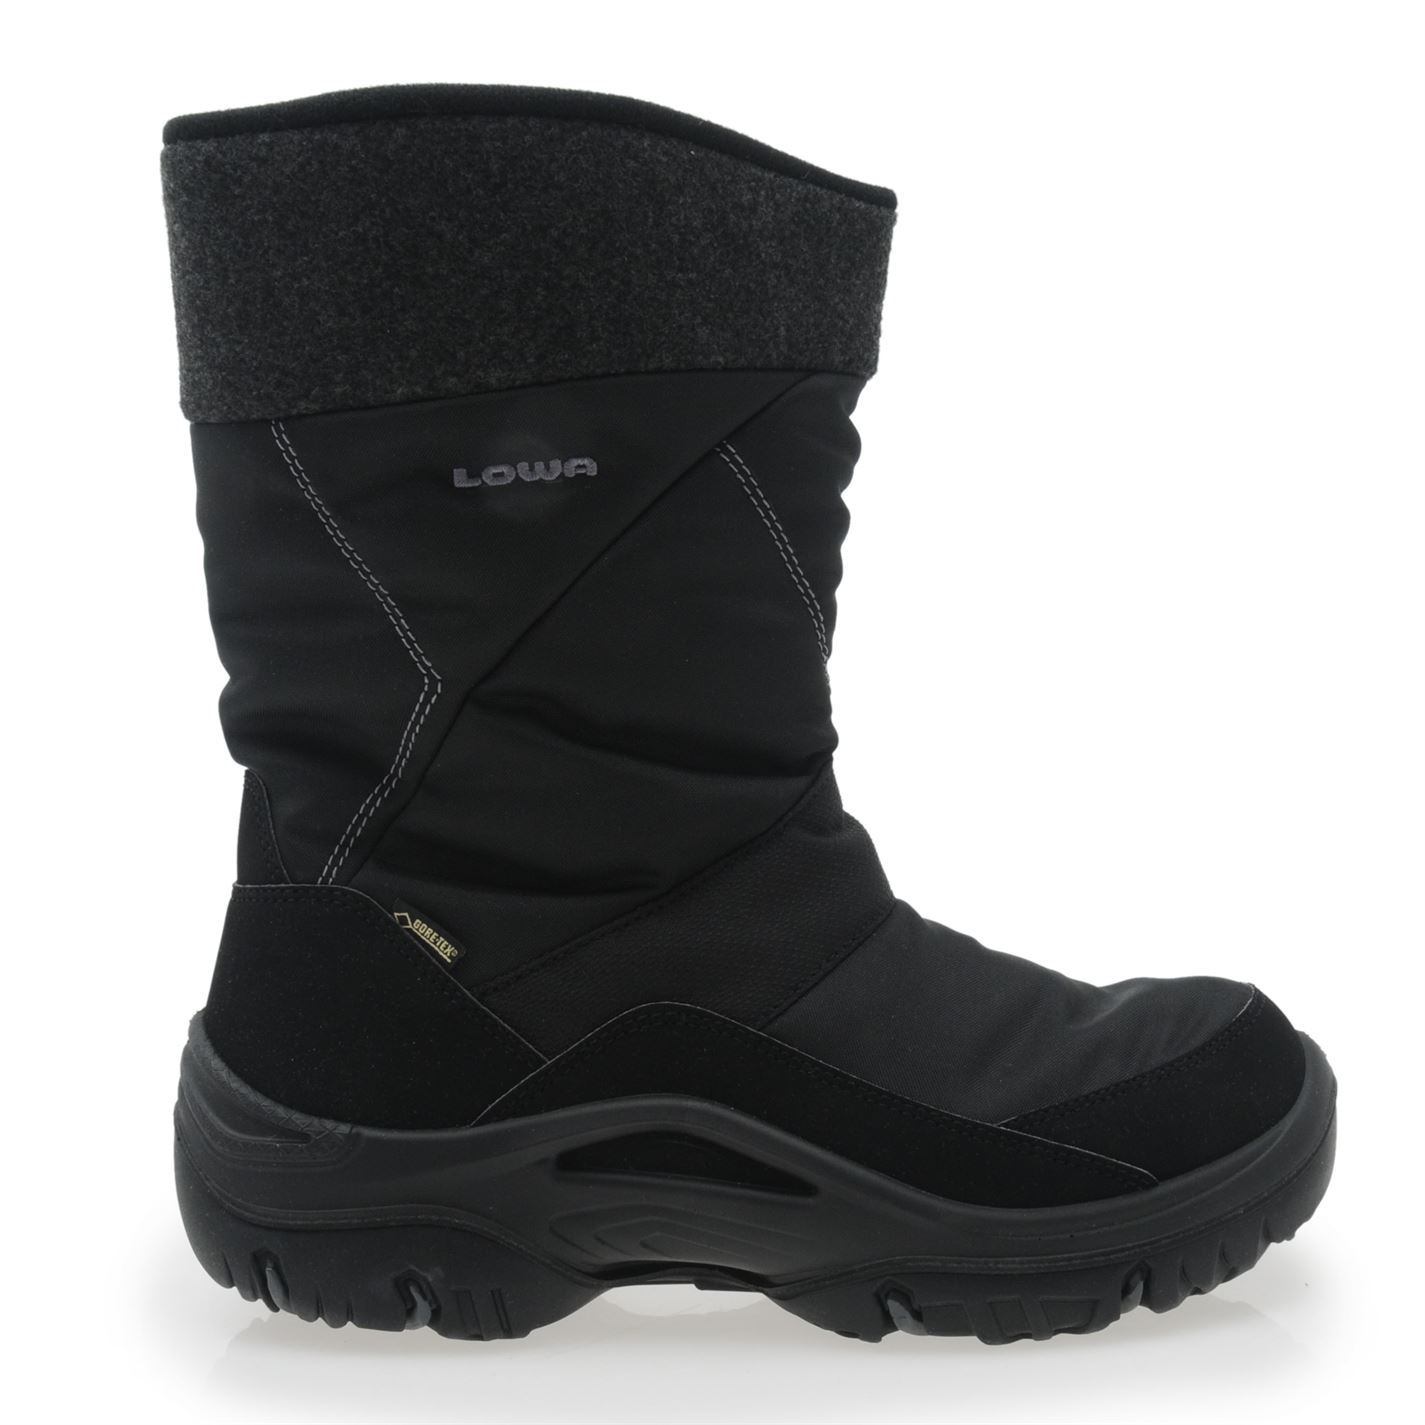 Mens Slip On Winter Boots | Planetary Skin Institute